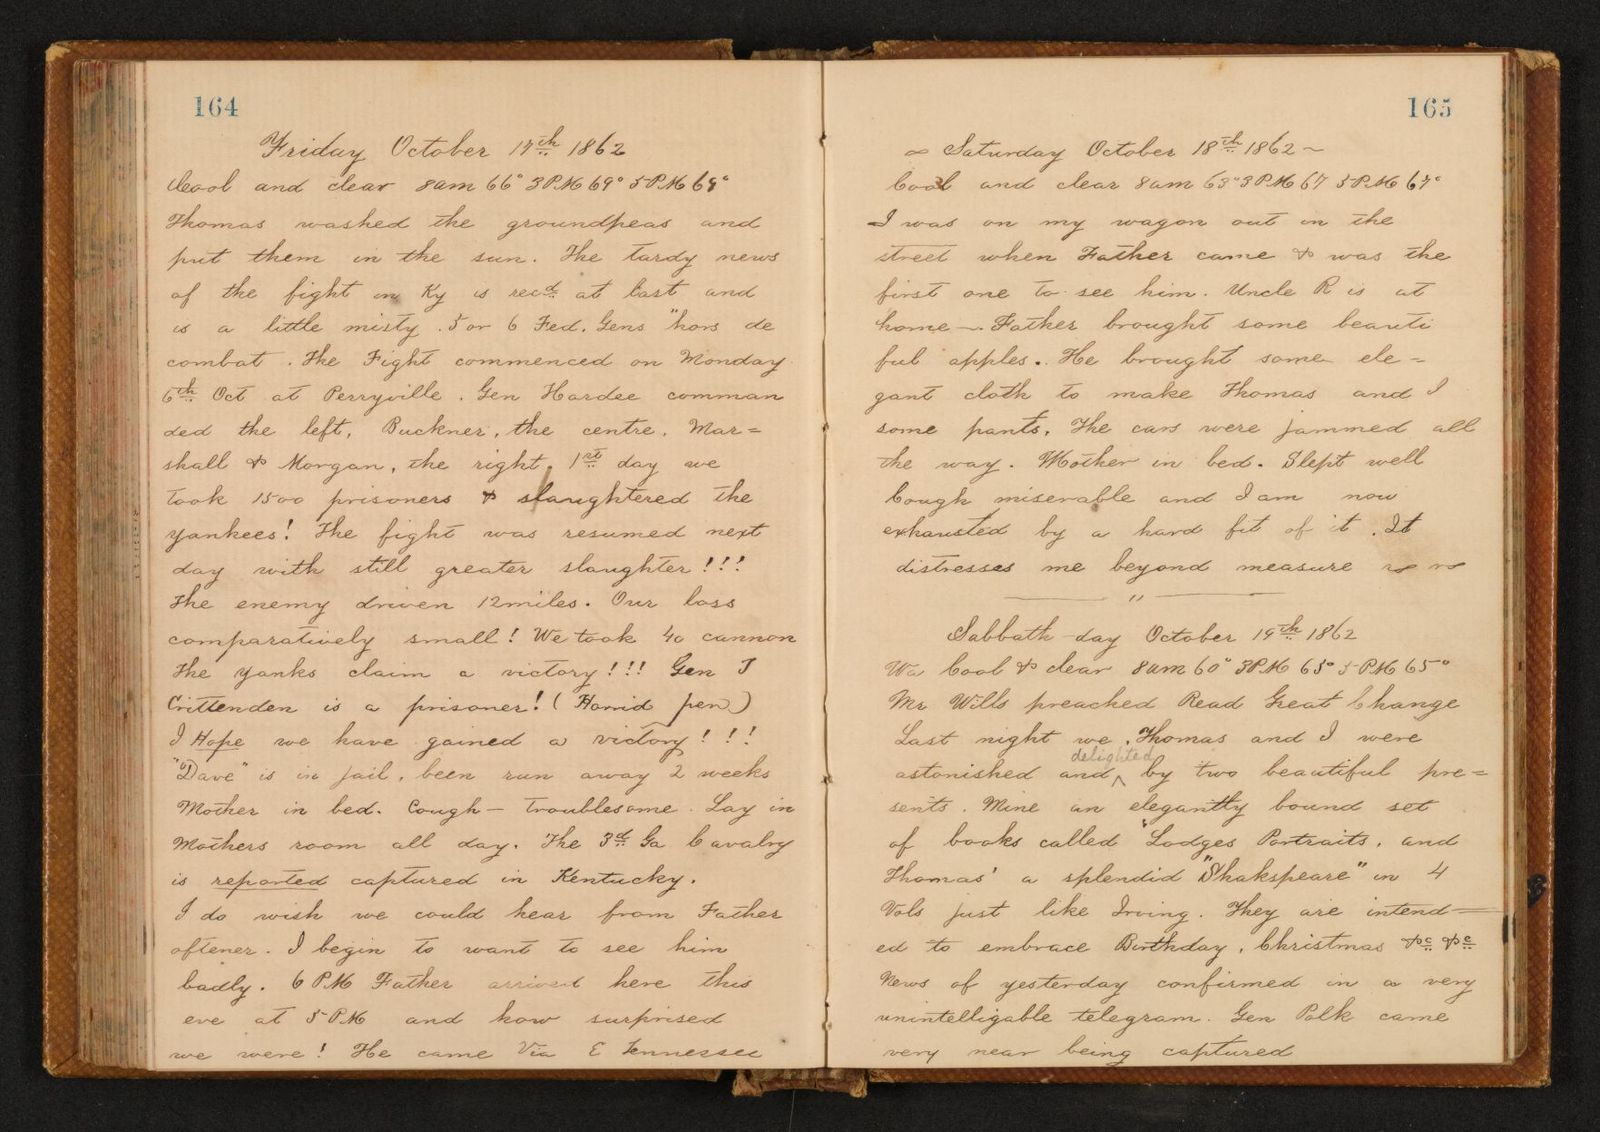 Lewis H. Machen Family Papers: Diaries and Diary Transcriptions, 1860-1865; Diaries; Gresham, LeRoy Wiley; 1862, 1 Jan.-1863, 12 Feb.